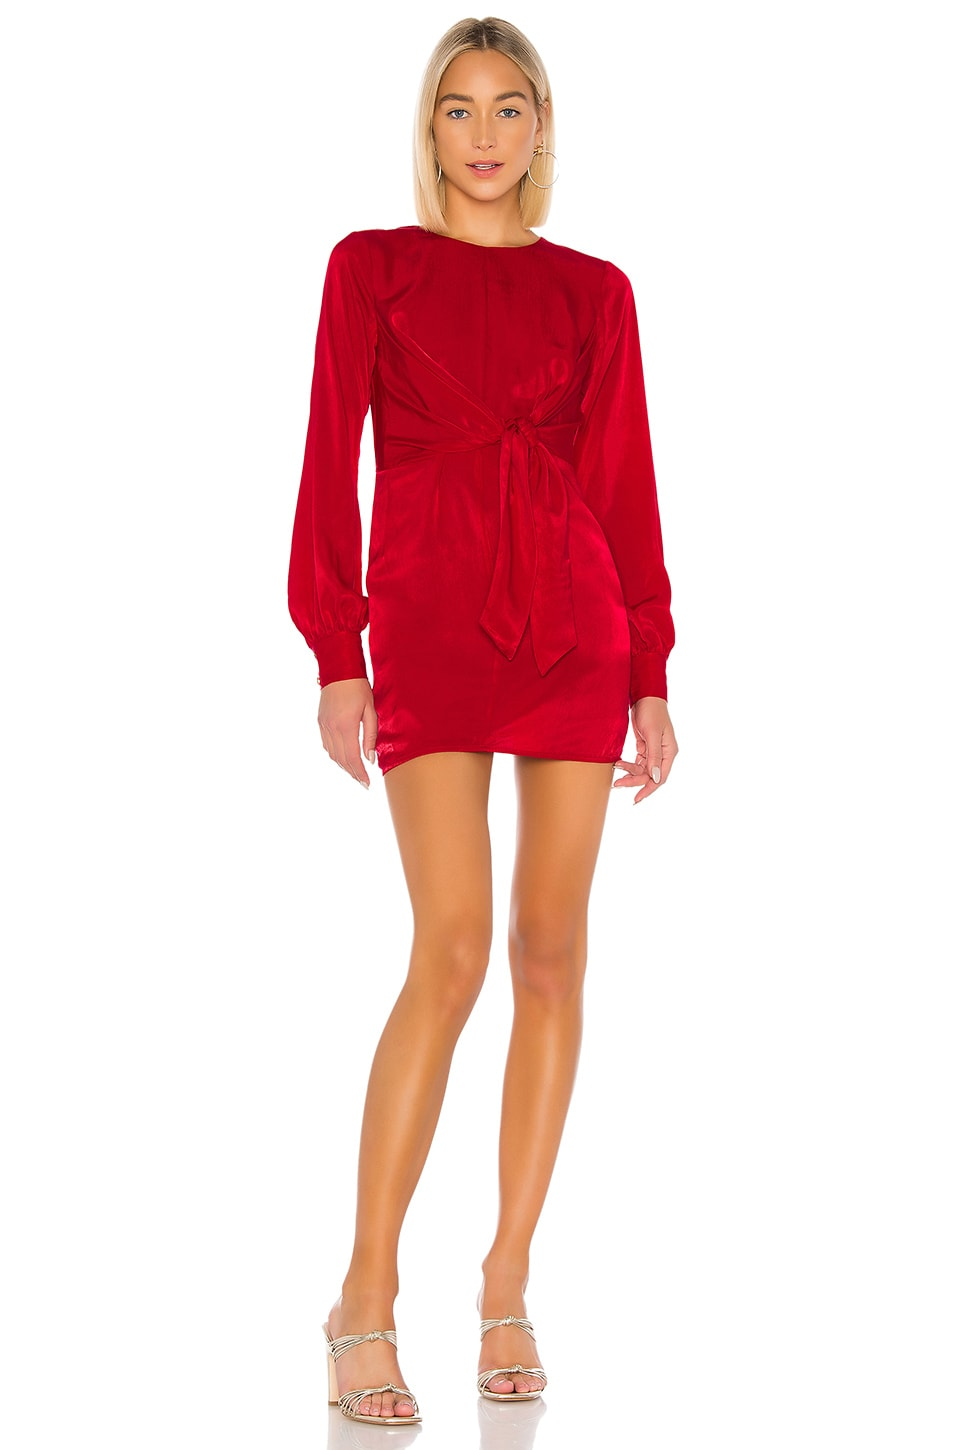 House of Harlow 1960 x REVOLVE Lotta Dress in Crimson